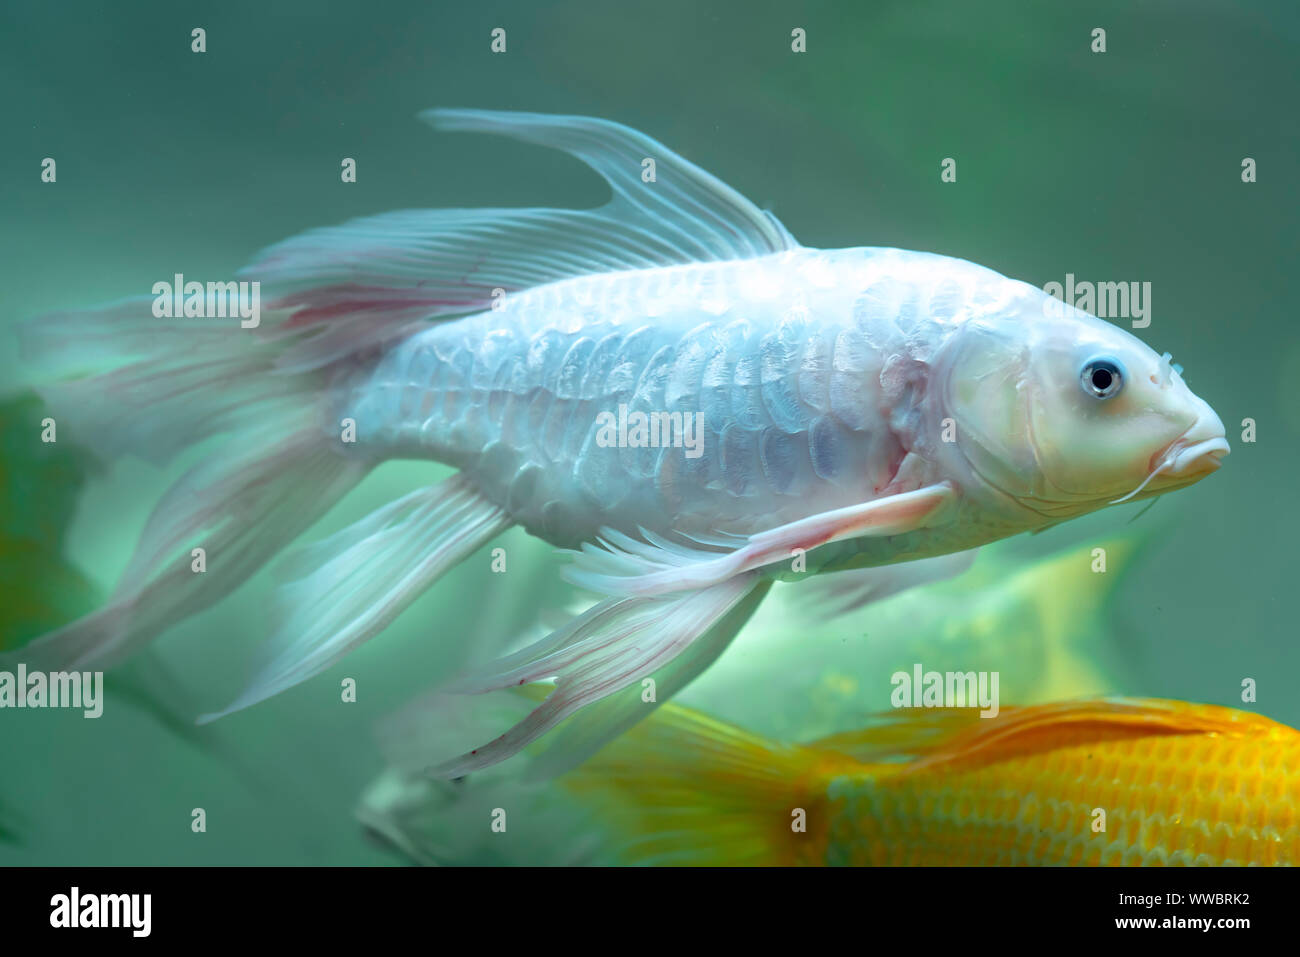 Colorful Butterfly Koi In The Aquarium This Is A Species Of Ornamental Fish Used To Decorate In The House Or Garden Stock Photo Alamy